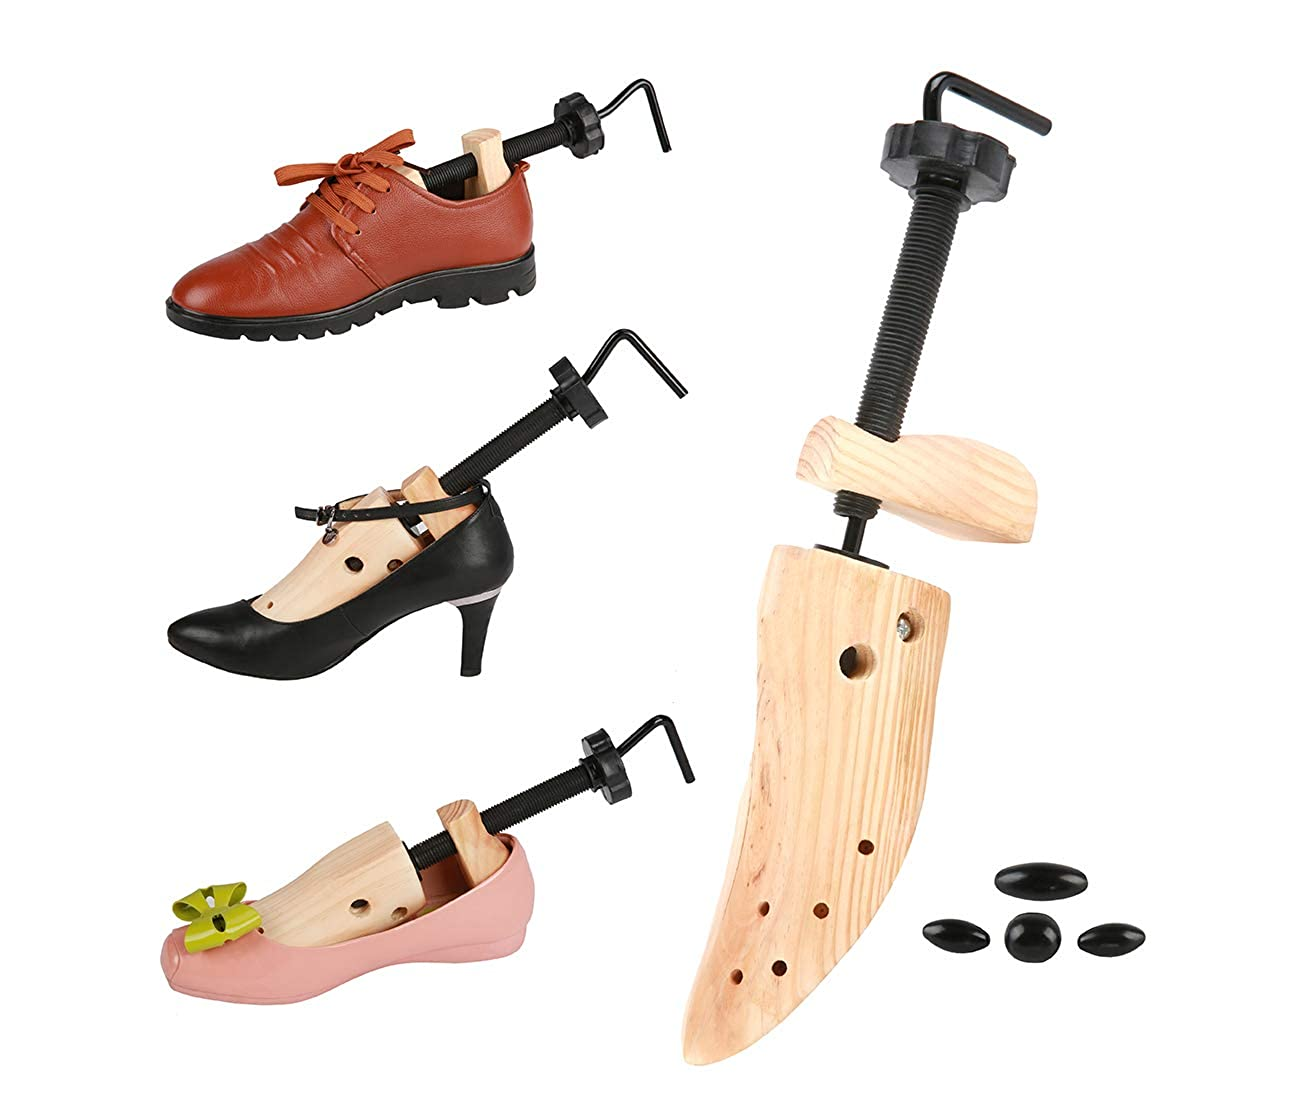 Langer /& Messmer shoe stretcher And Shoe Wideners Made Of Beech Wood For Gentlemen Width And Length Leather Stretcher Incl